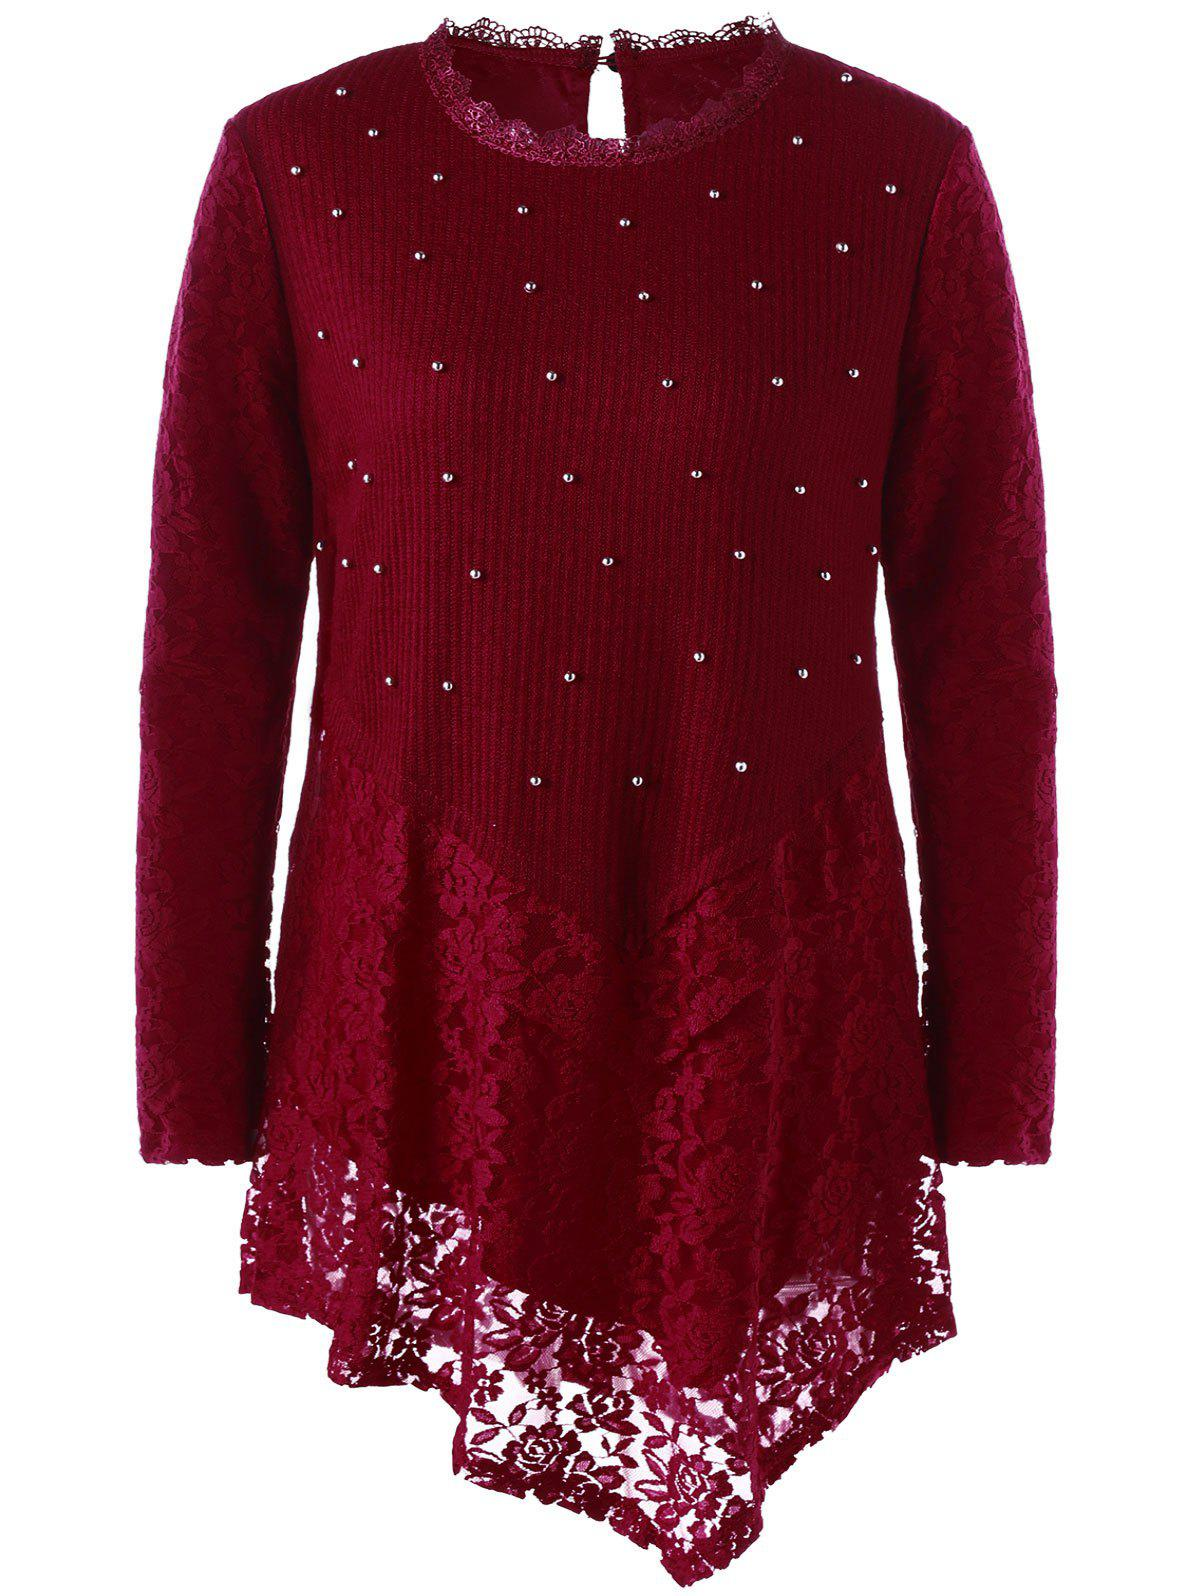 Faux Pearl Plus Size Lace Asymmetric TopWOMEN<br><br>Size: 5XL; Color: WINE RED; Material: Polyester,Spandex; Shirt Length: Long; Sleeve Length: Full; Collar: Crew Neck; Style: Fashion; Season: Fall,Spring; Embellishment: Pearls; Pattern Type: Solid; Weight: 0.3200kg; Package Contents: 1 x Top;